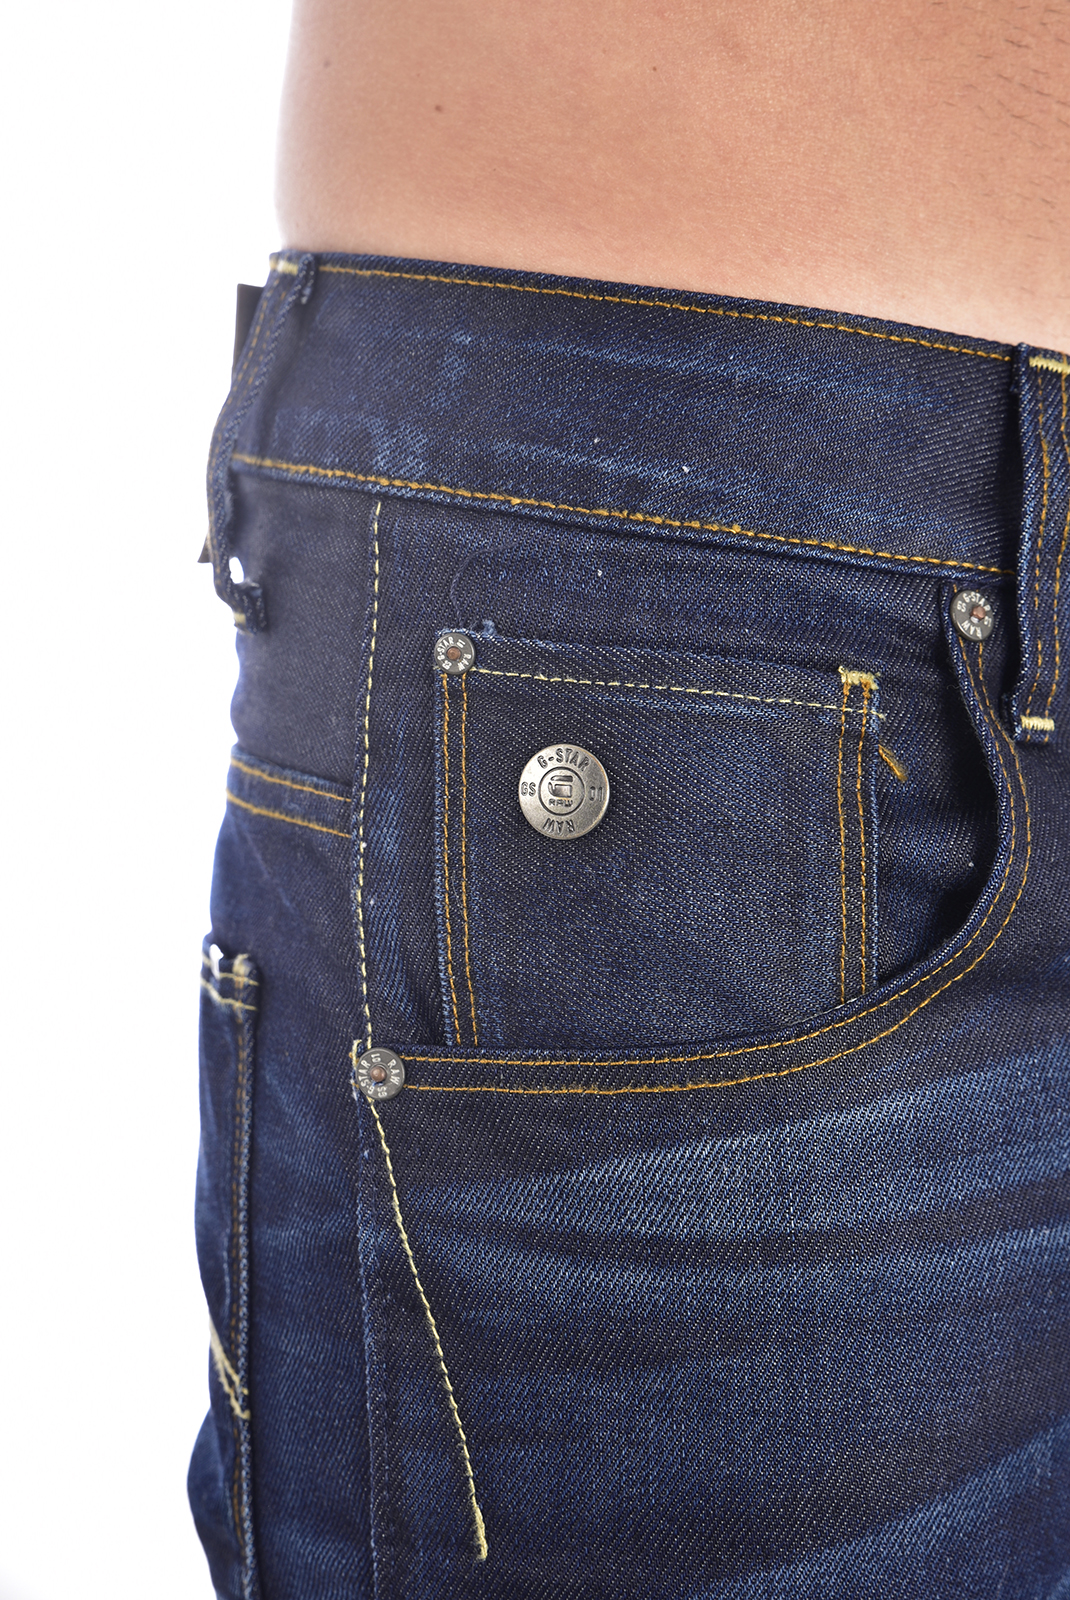 Jeans  G-star 51030-4639-89 arc bleu